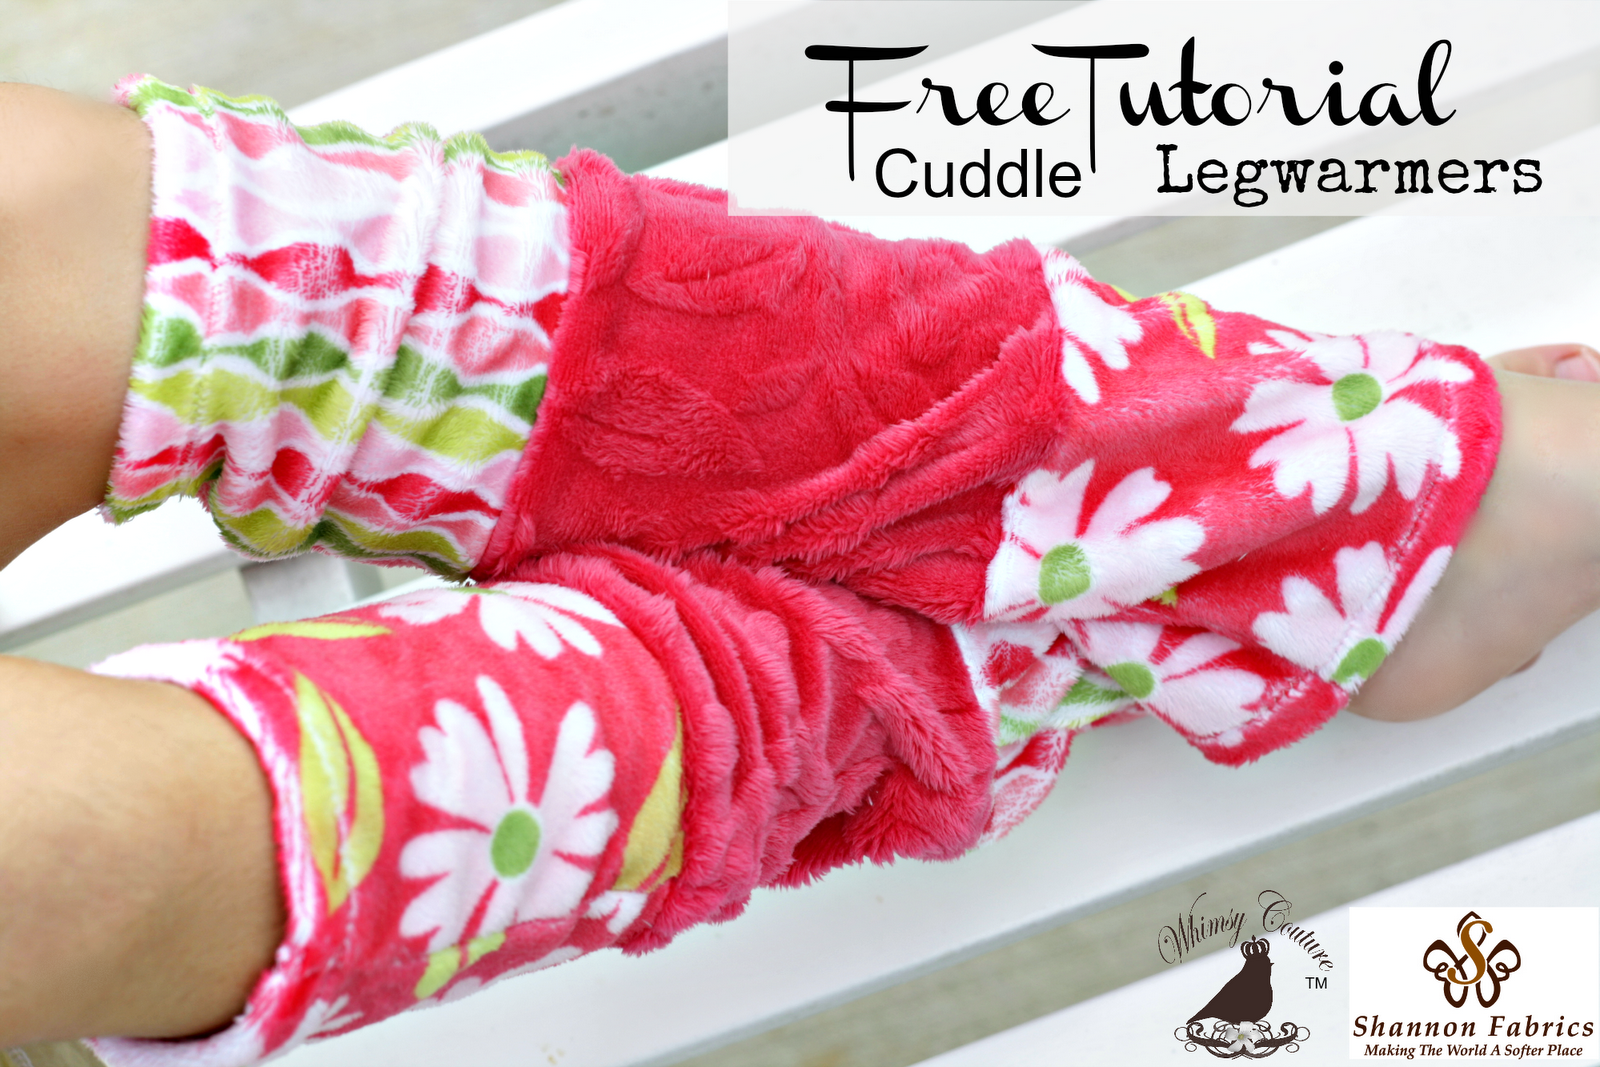 Whimsy couture sewing blog free sewing pattern cuddle whimsy couture sewing blog free sewing pattern cuddle legwarmers jeuxipadfo Choice Image